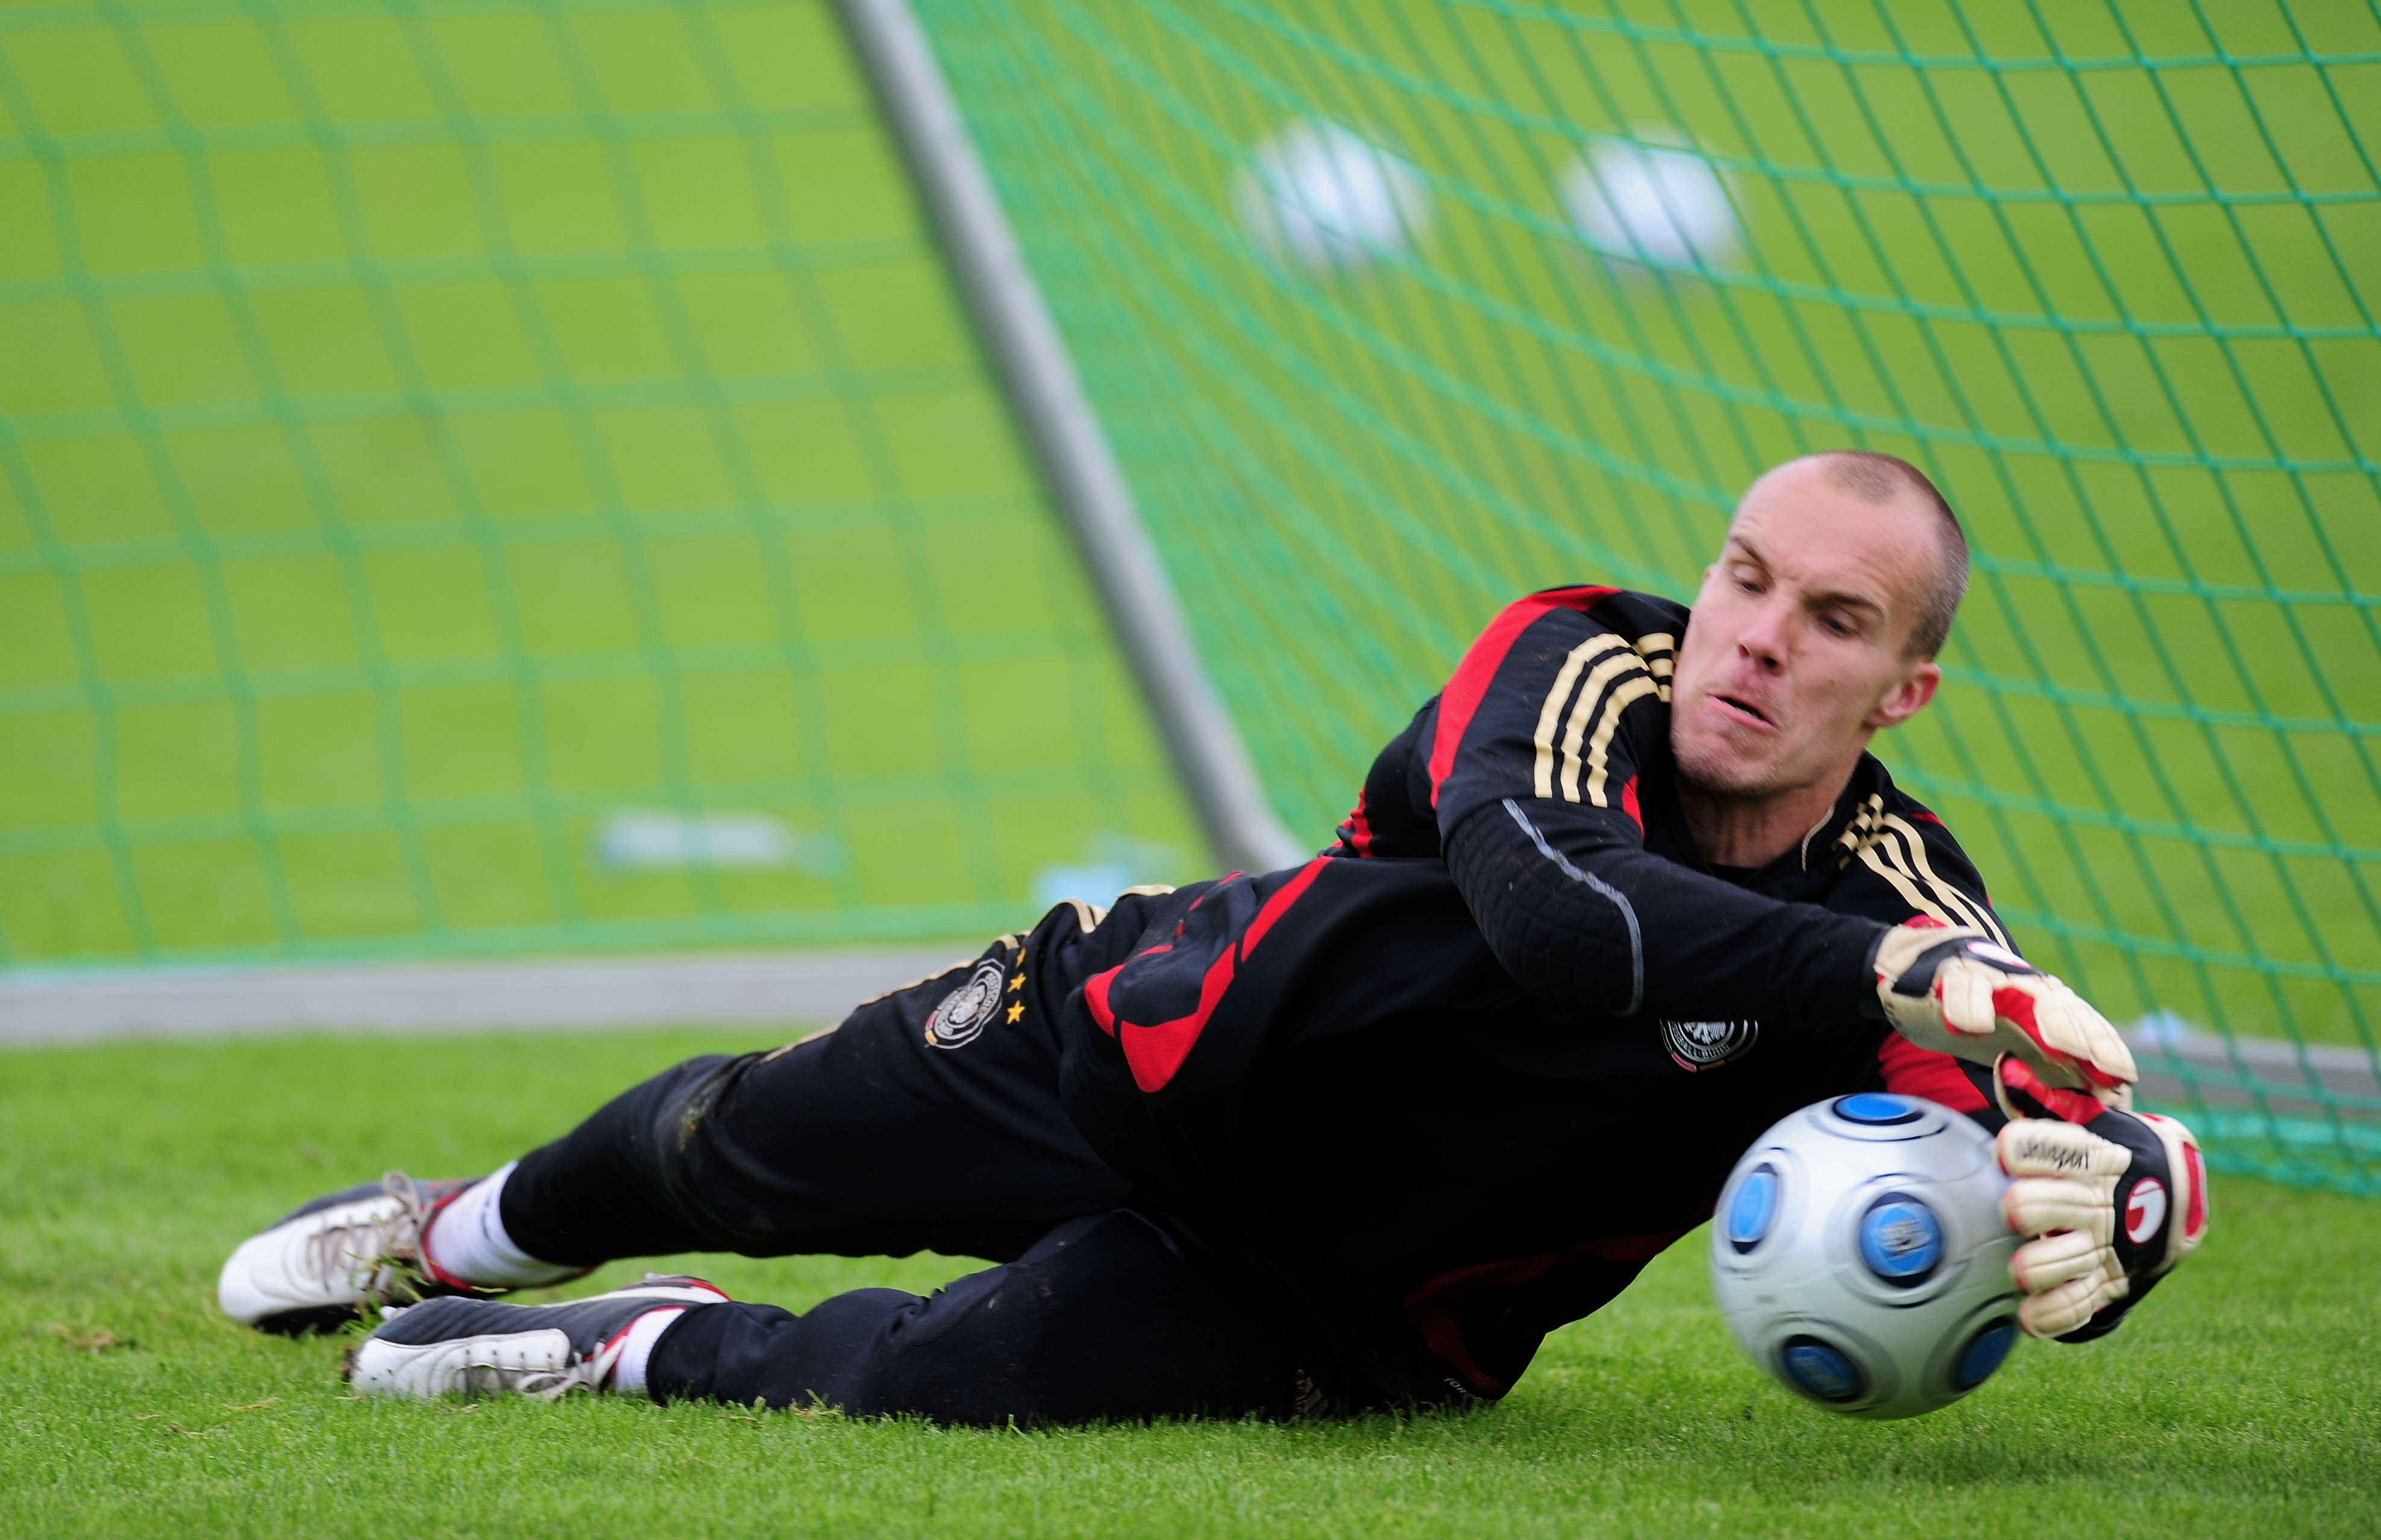 COLOGNE, GERMANY - SEPTEMBER 06: Robert Enke of Germany is seen during a training session of the German national football team at the Sued Stadium on September 6, 2009 in Cologne, Germany. (Photo by Stuart Franklin/Bongarts/Getty Images)